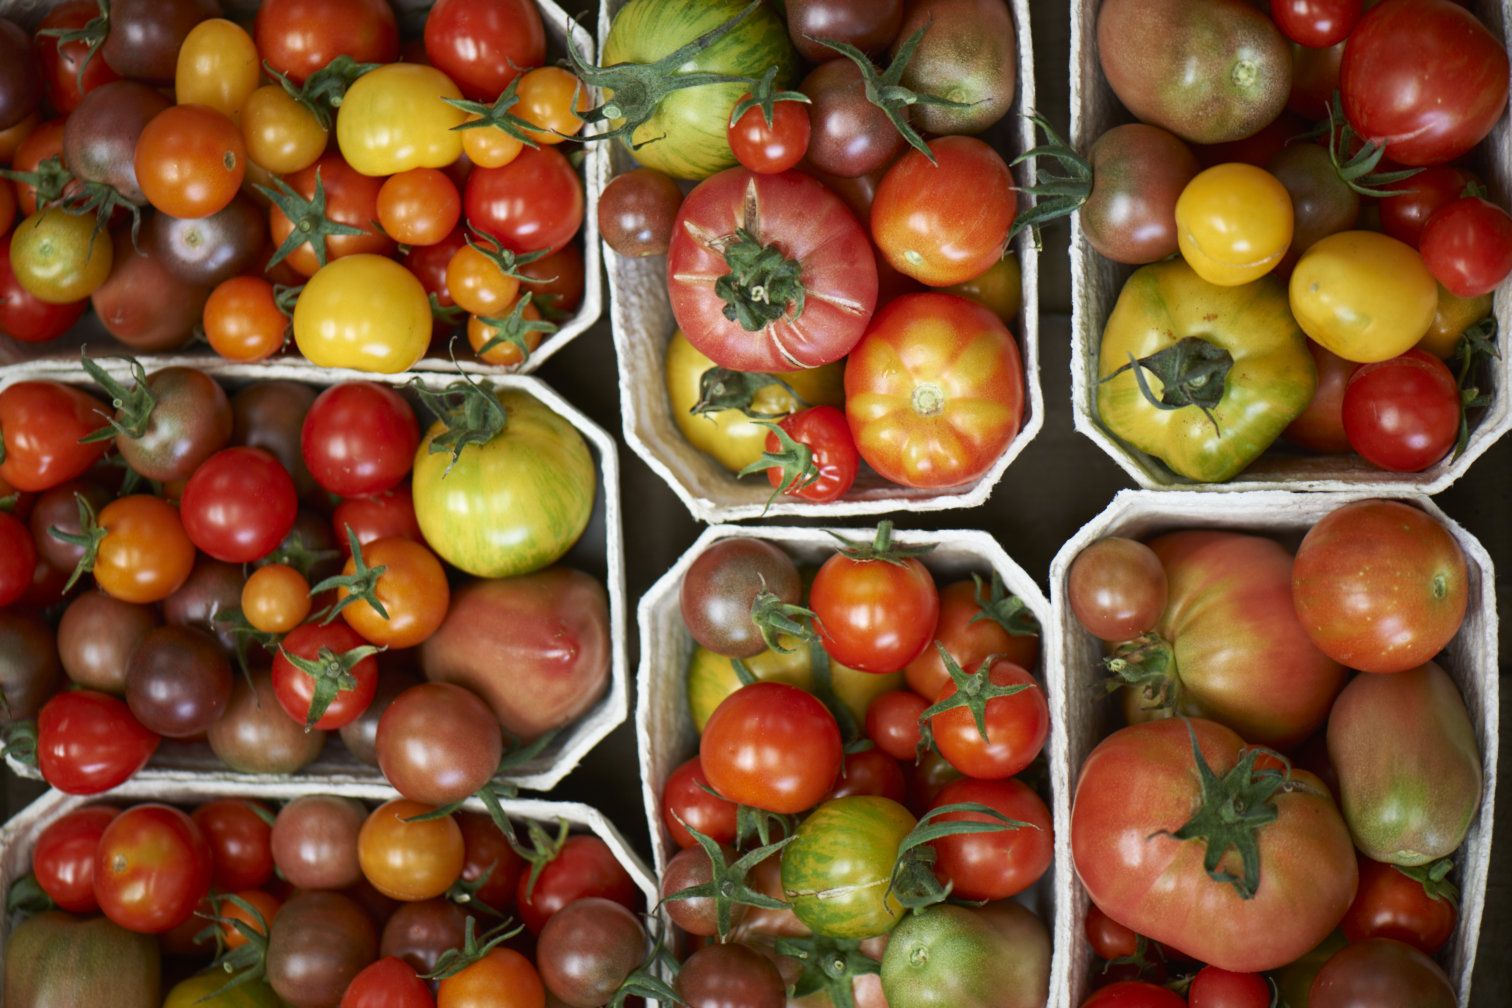 Punnets of fresh tomatoes shot from overhead